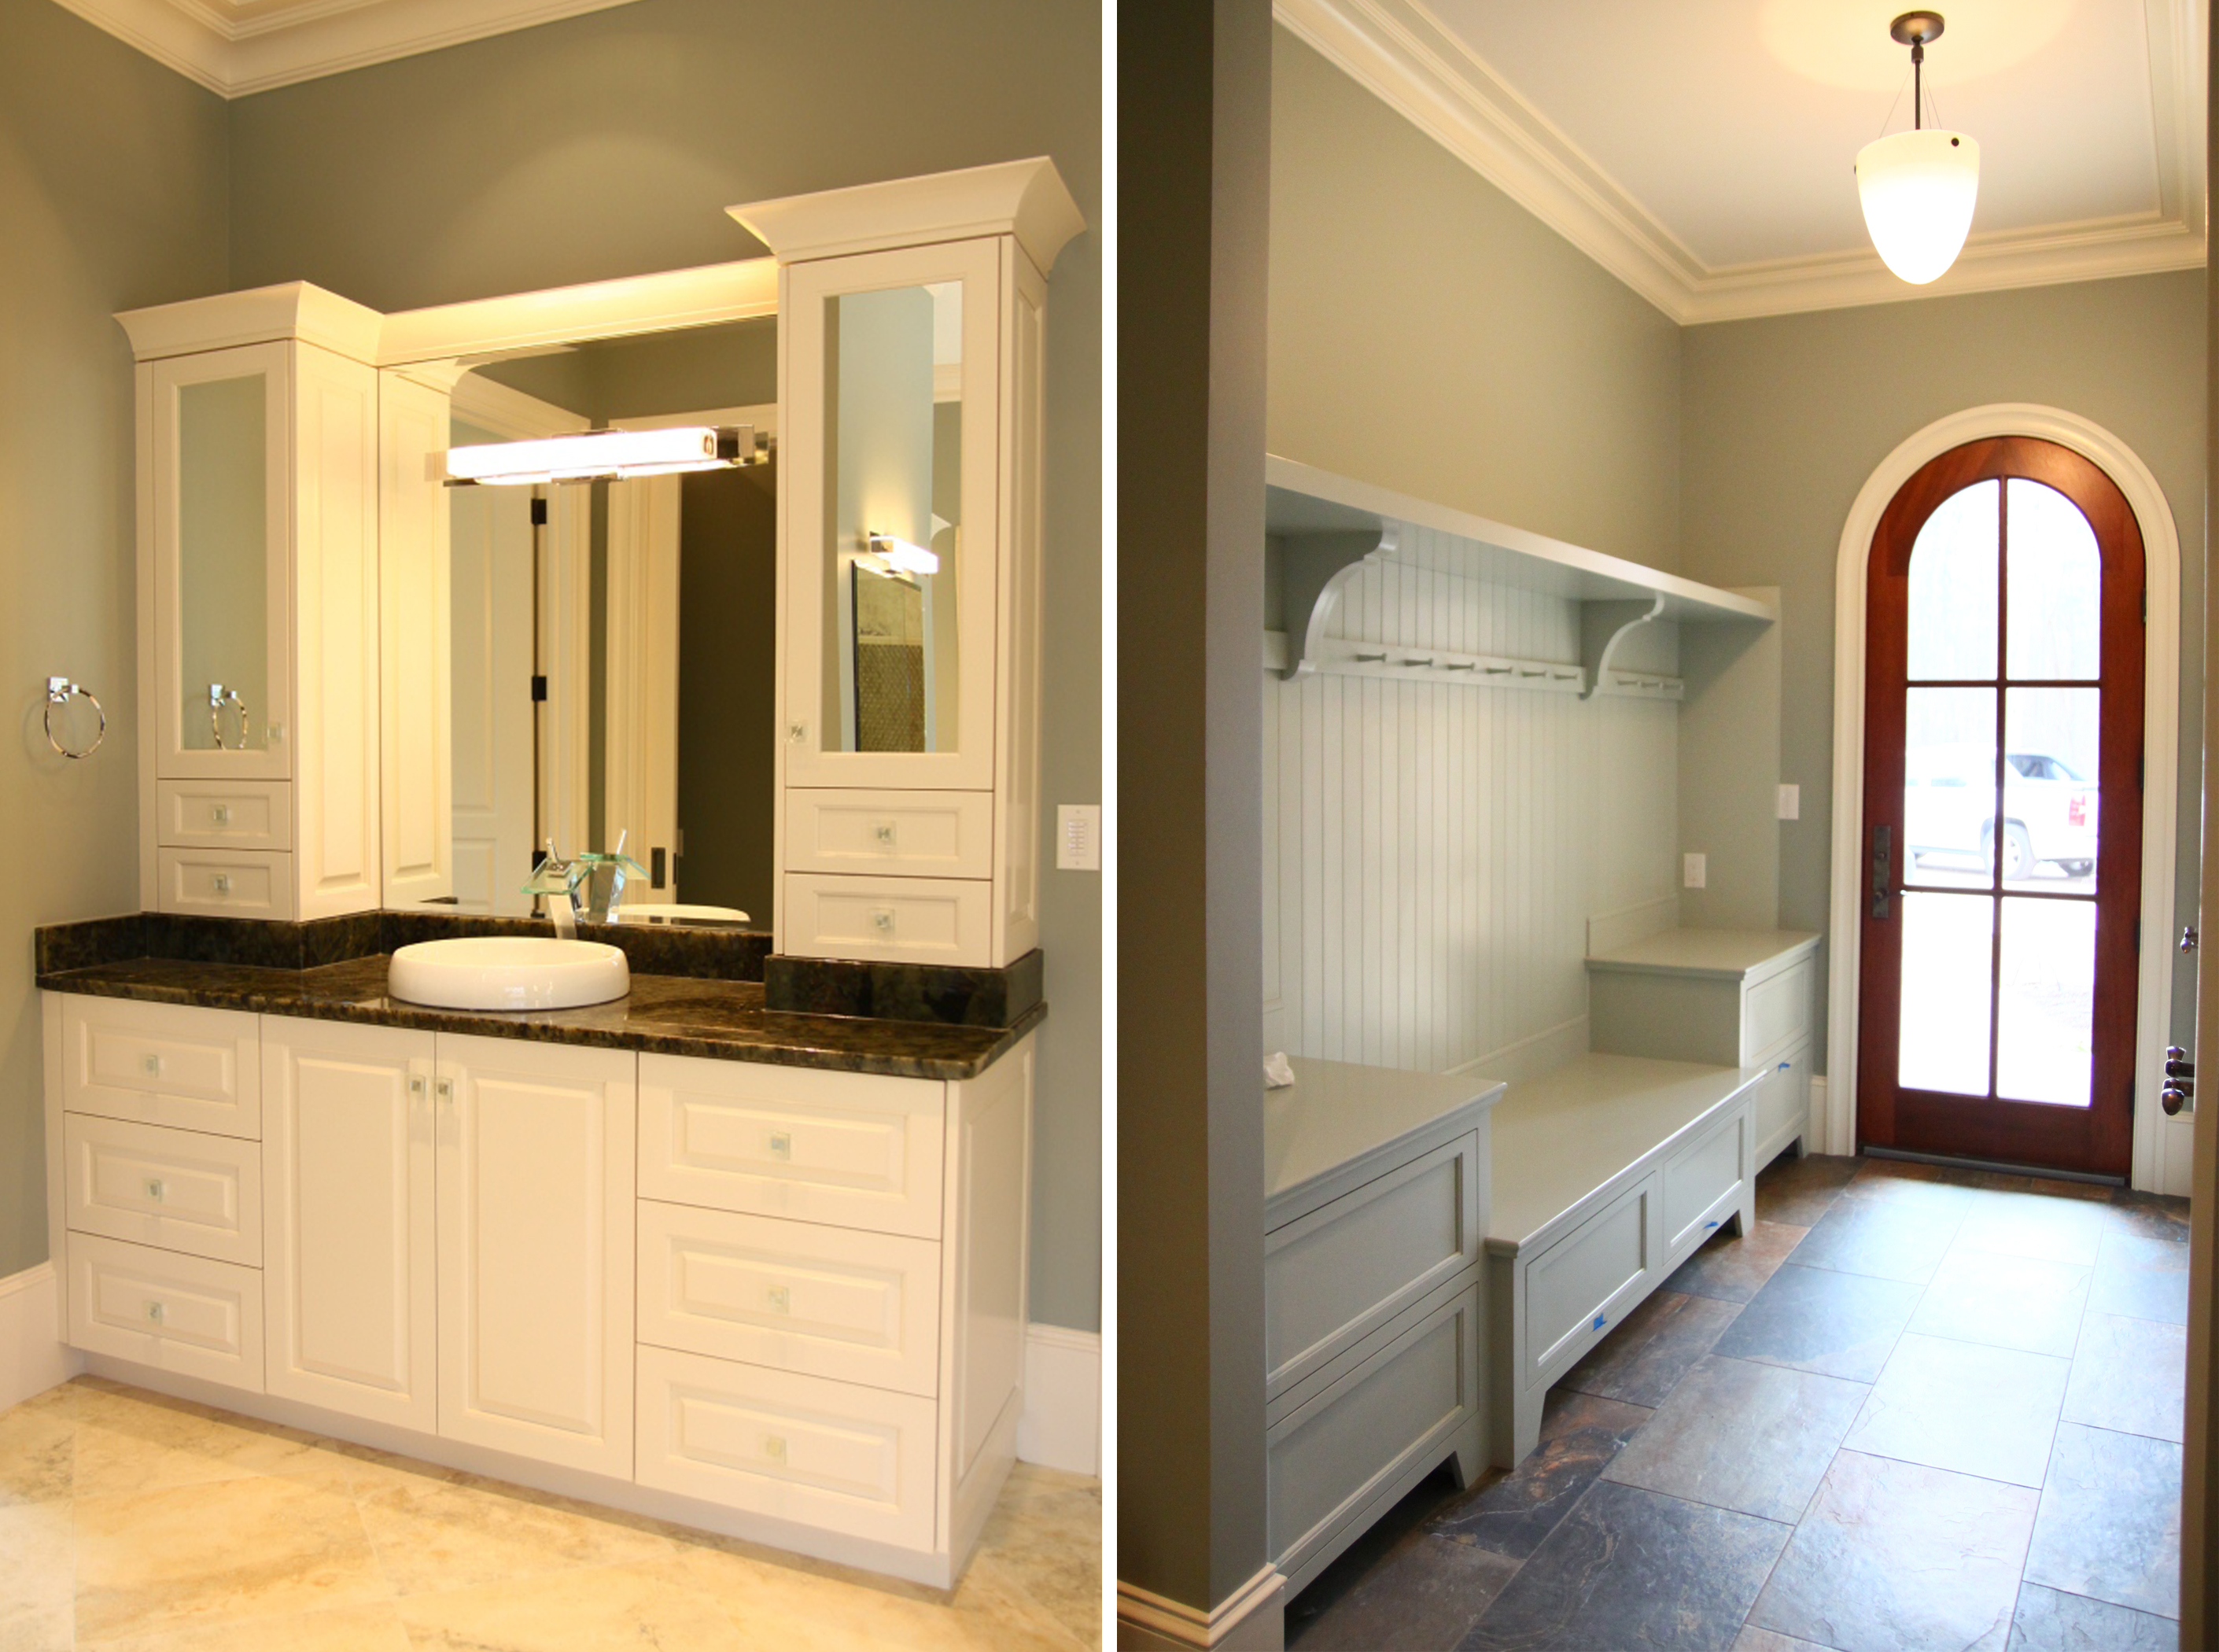 design lines blog cabinetry cary home bathroom vanity and hall mud ...